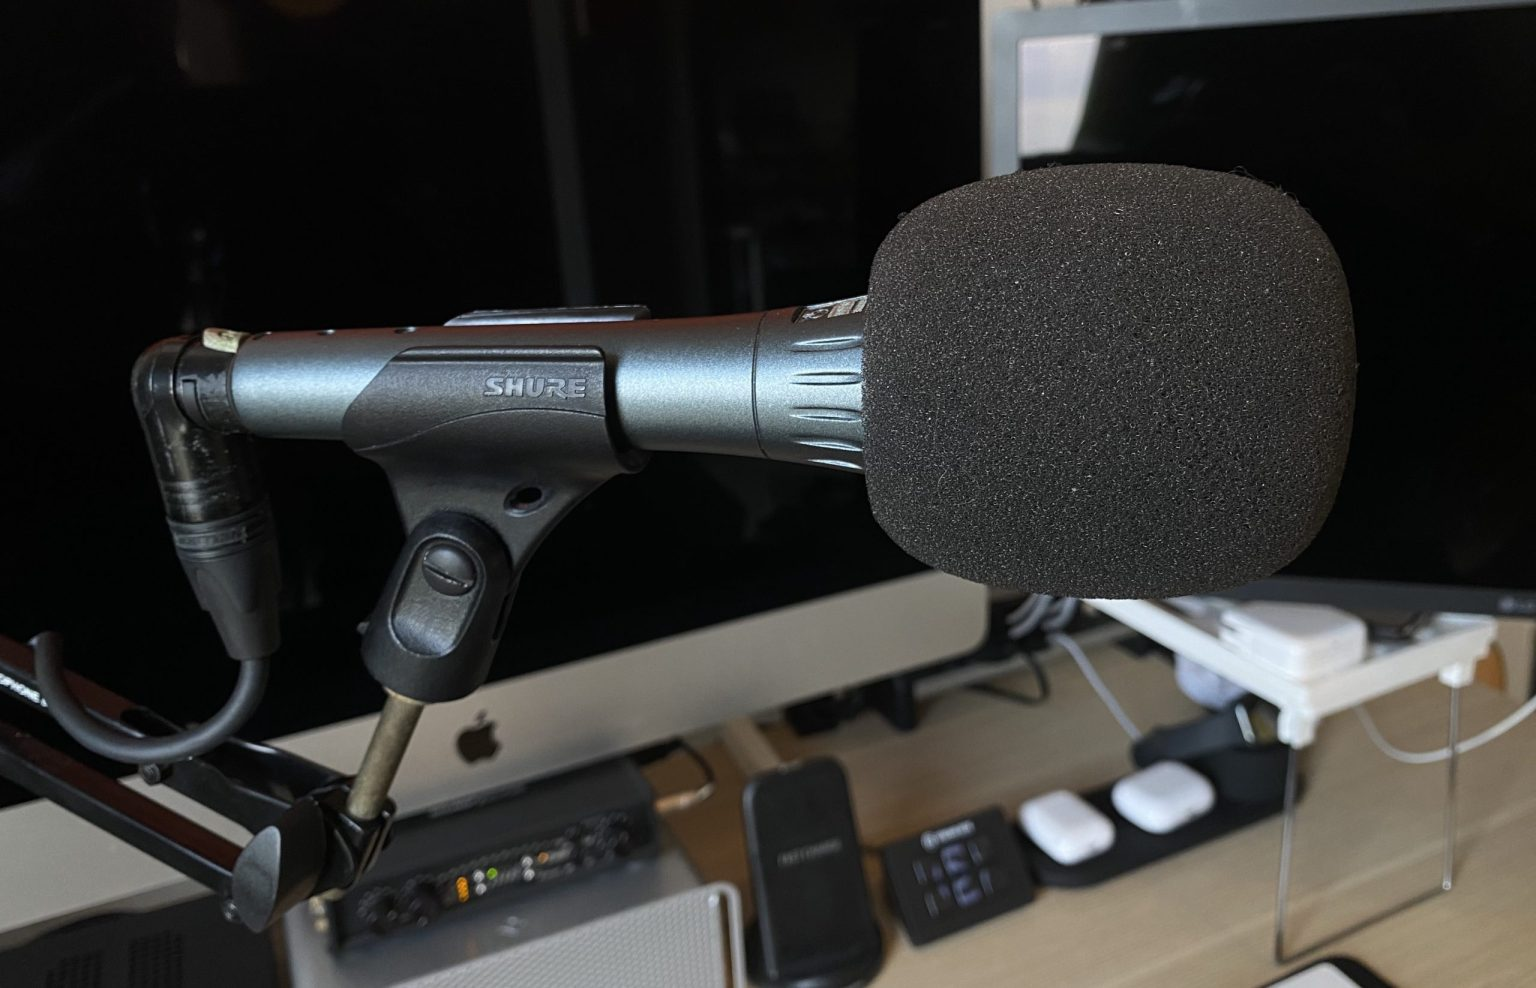 Thompson's main recording miThompson's main recording mic is a Shure BETA 87A Supercardioid Condenser Vocal Microphone.